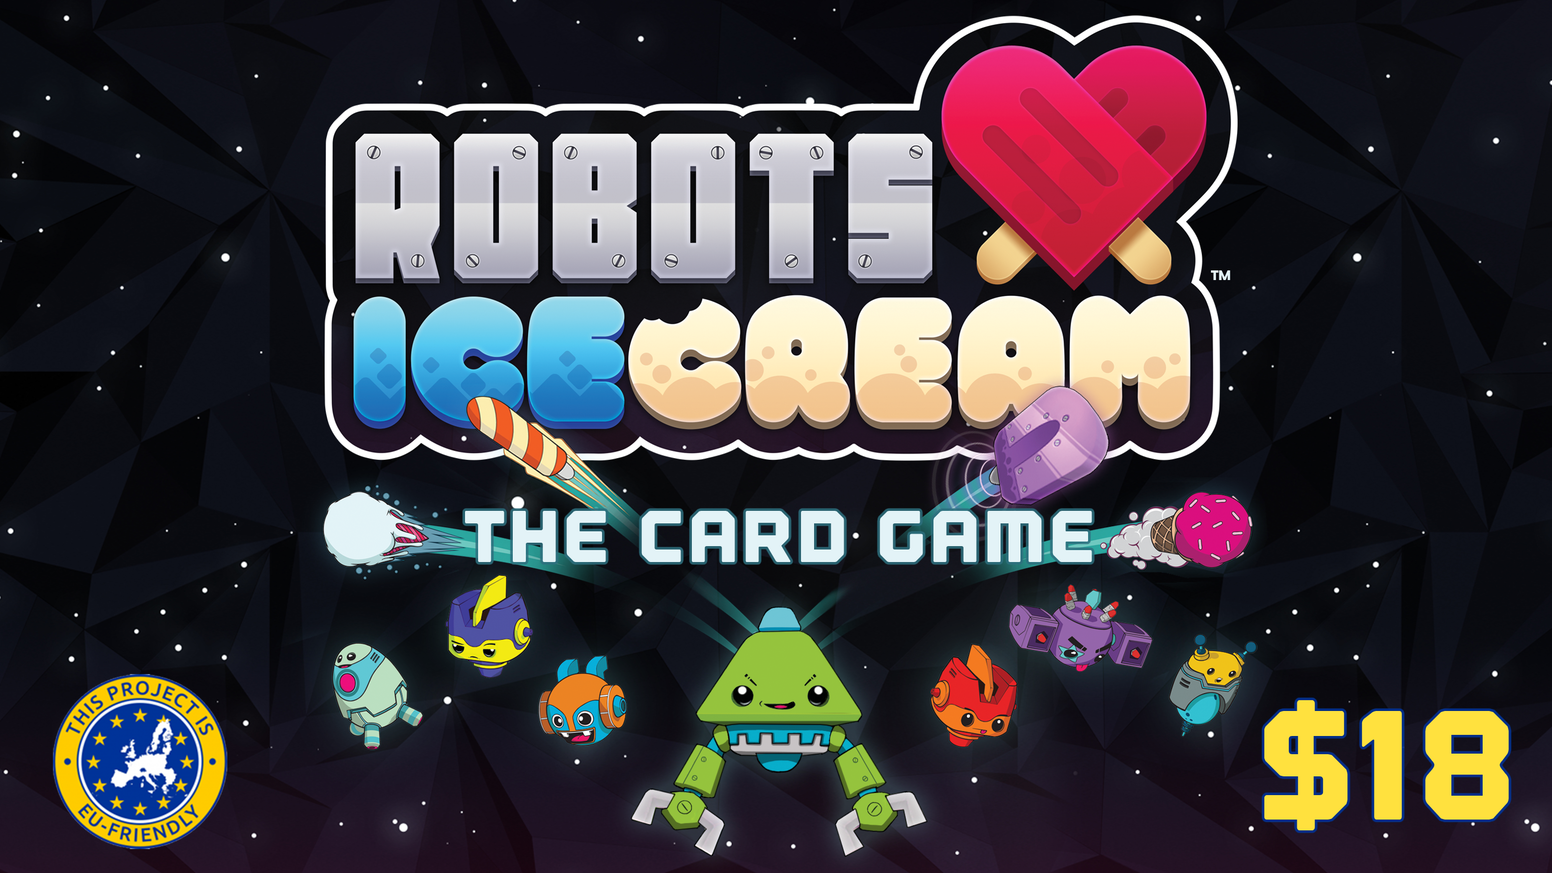 Family friendly co-op game for 1-4 players ages 8+. Collect sets of weaponized ice cream to defeat Spinston & save the galaxy.